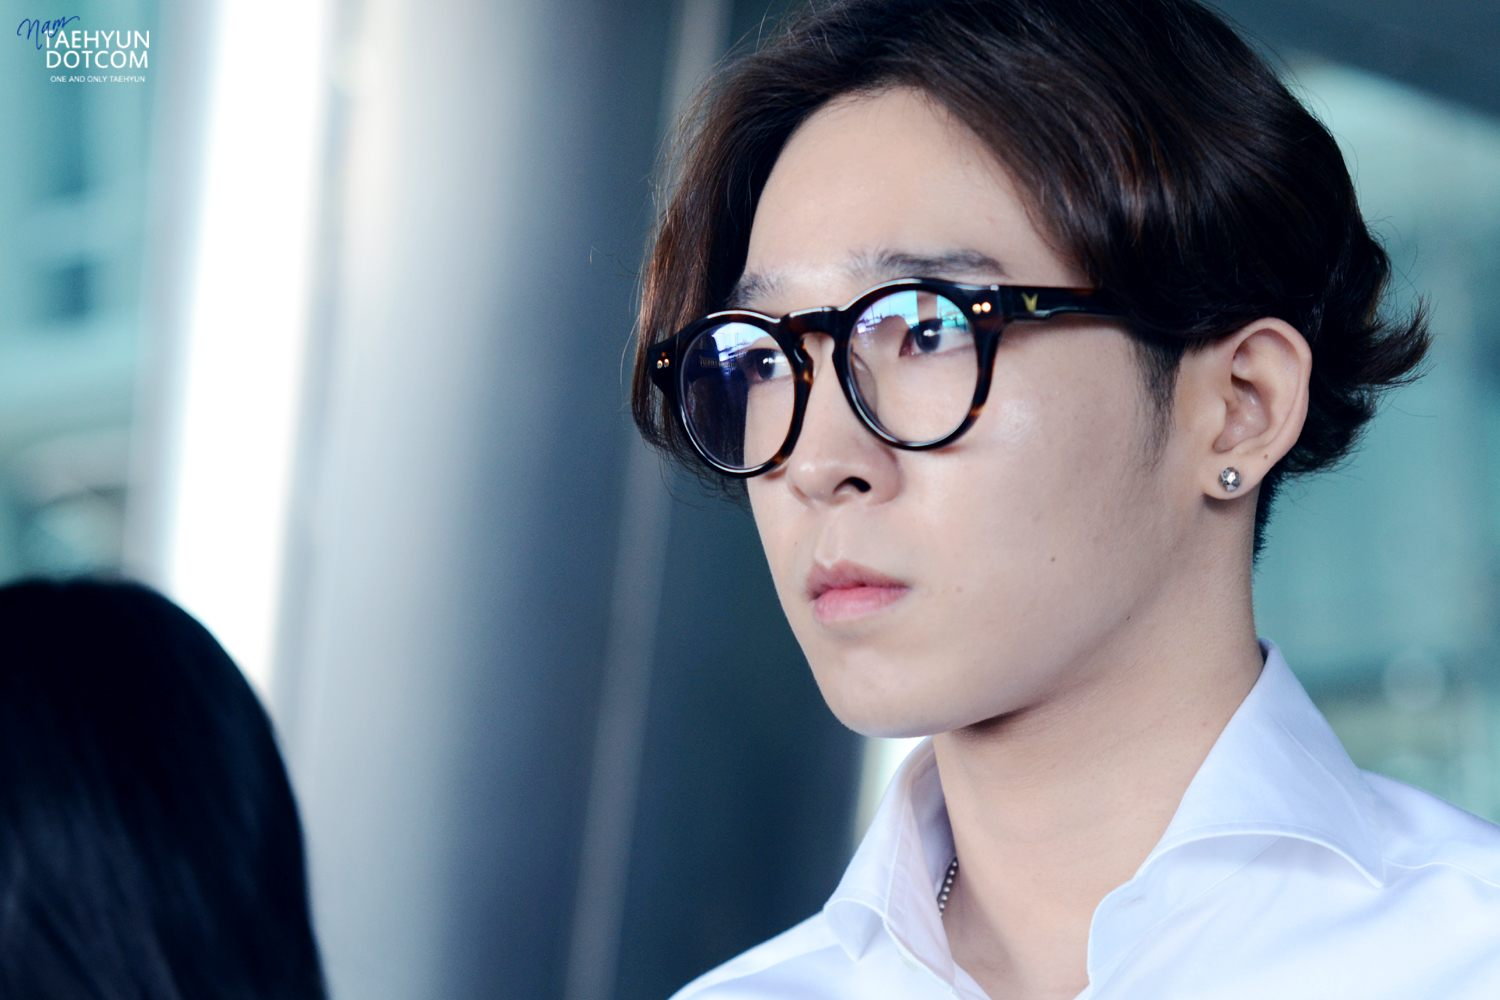 Nam Taehyun Warns Sasaeng Fans On Instagram